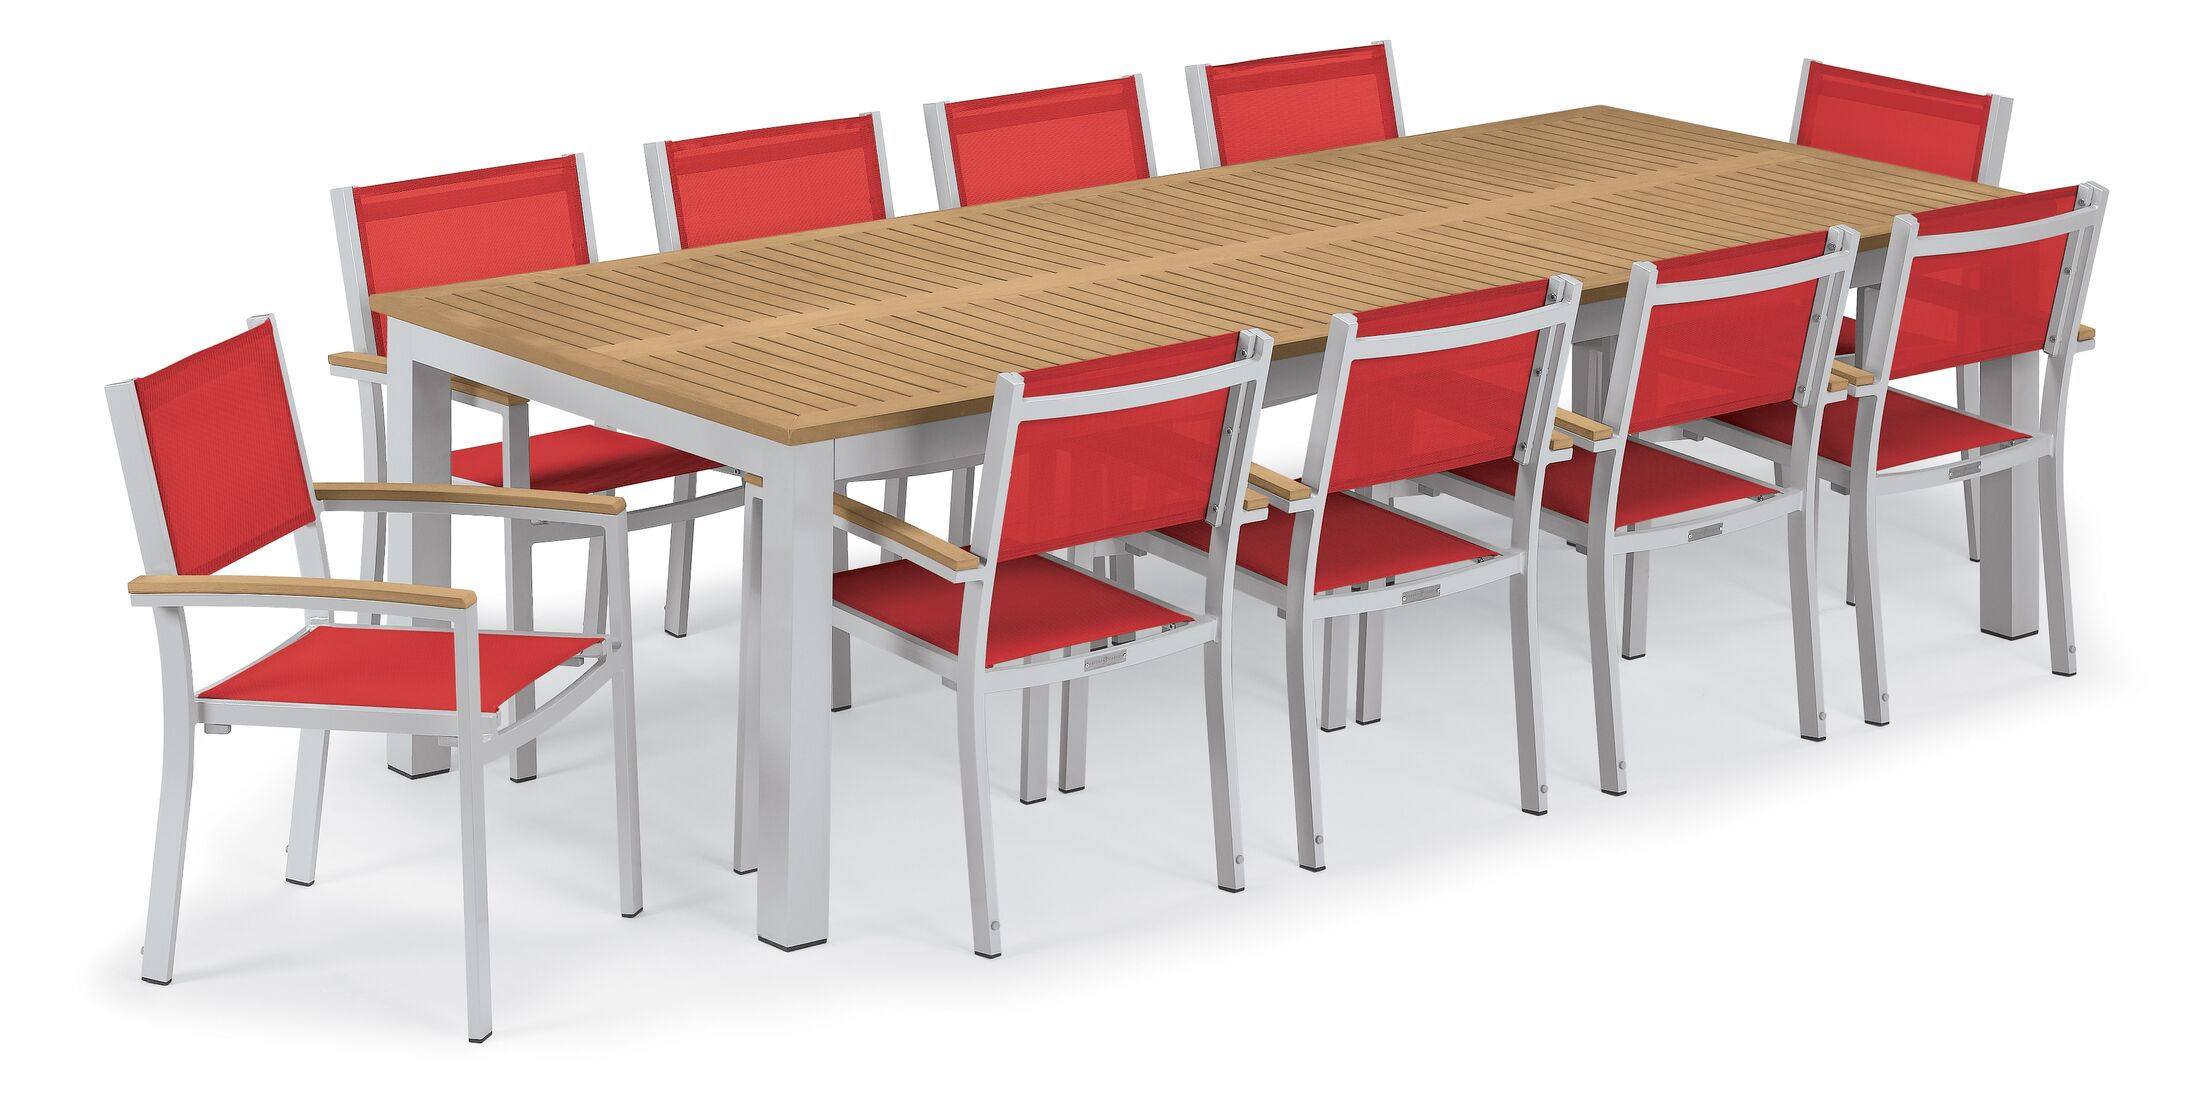 Maclin 11 Piece Dining Set Accessory Color: Red Sling, Color: Natural